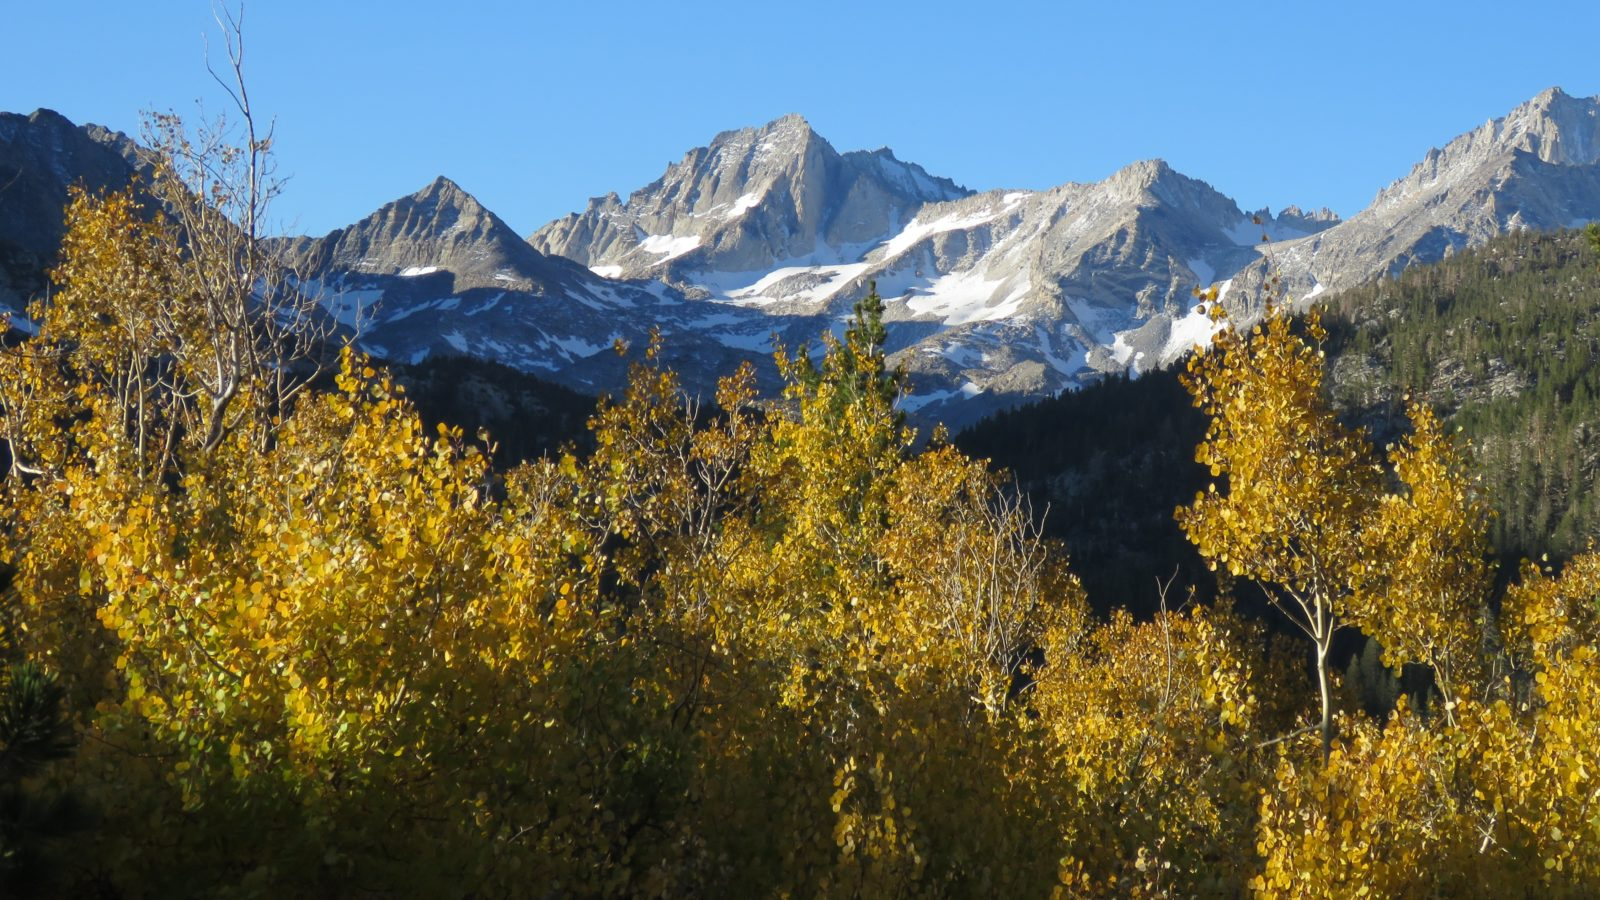 Autumn in John Muir Wilderness